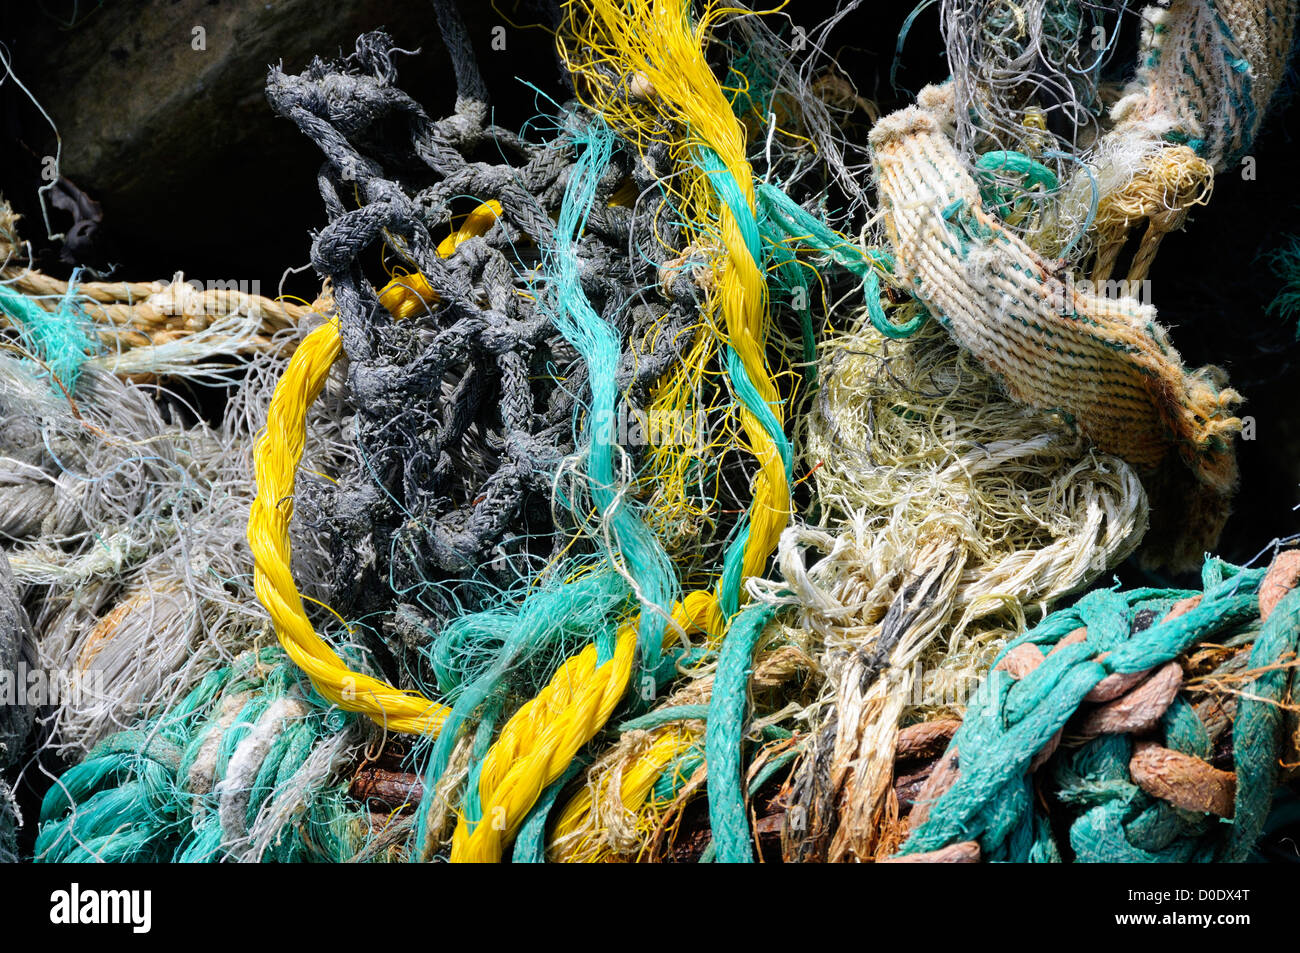 Plastic waste from fishing nets and ship's ropes tangled on the beach. Mainland, Orkney, Scotland, UK. - Stock Image